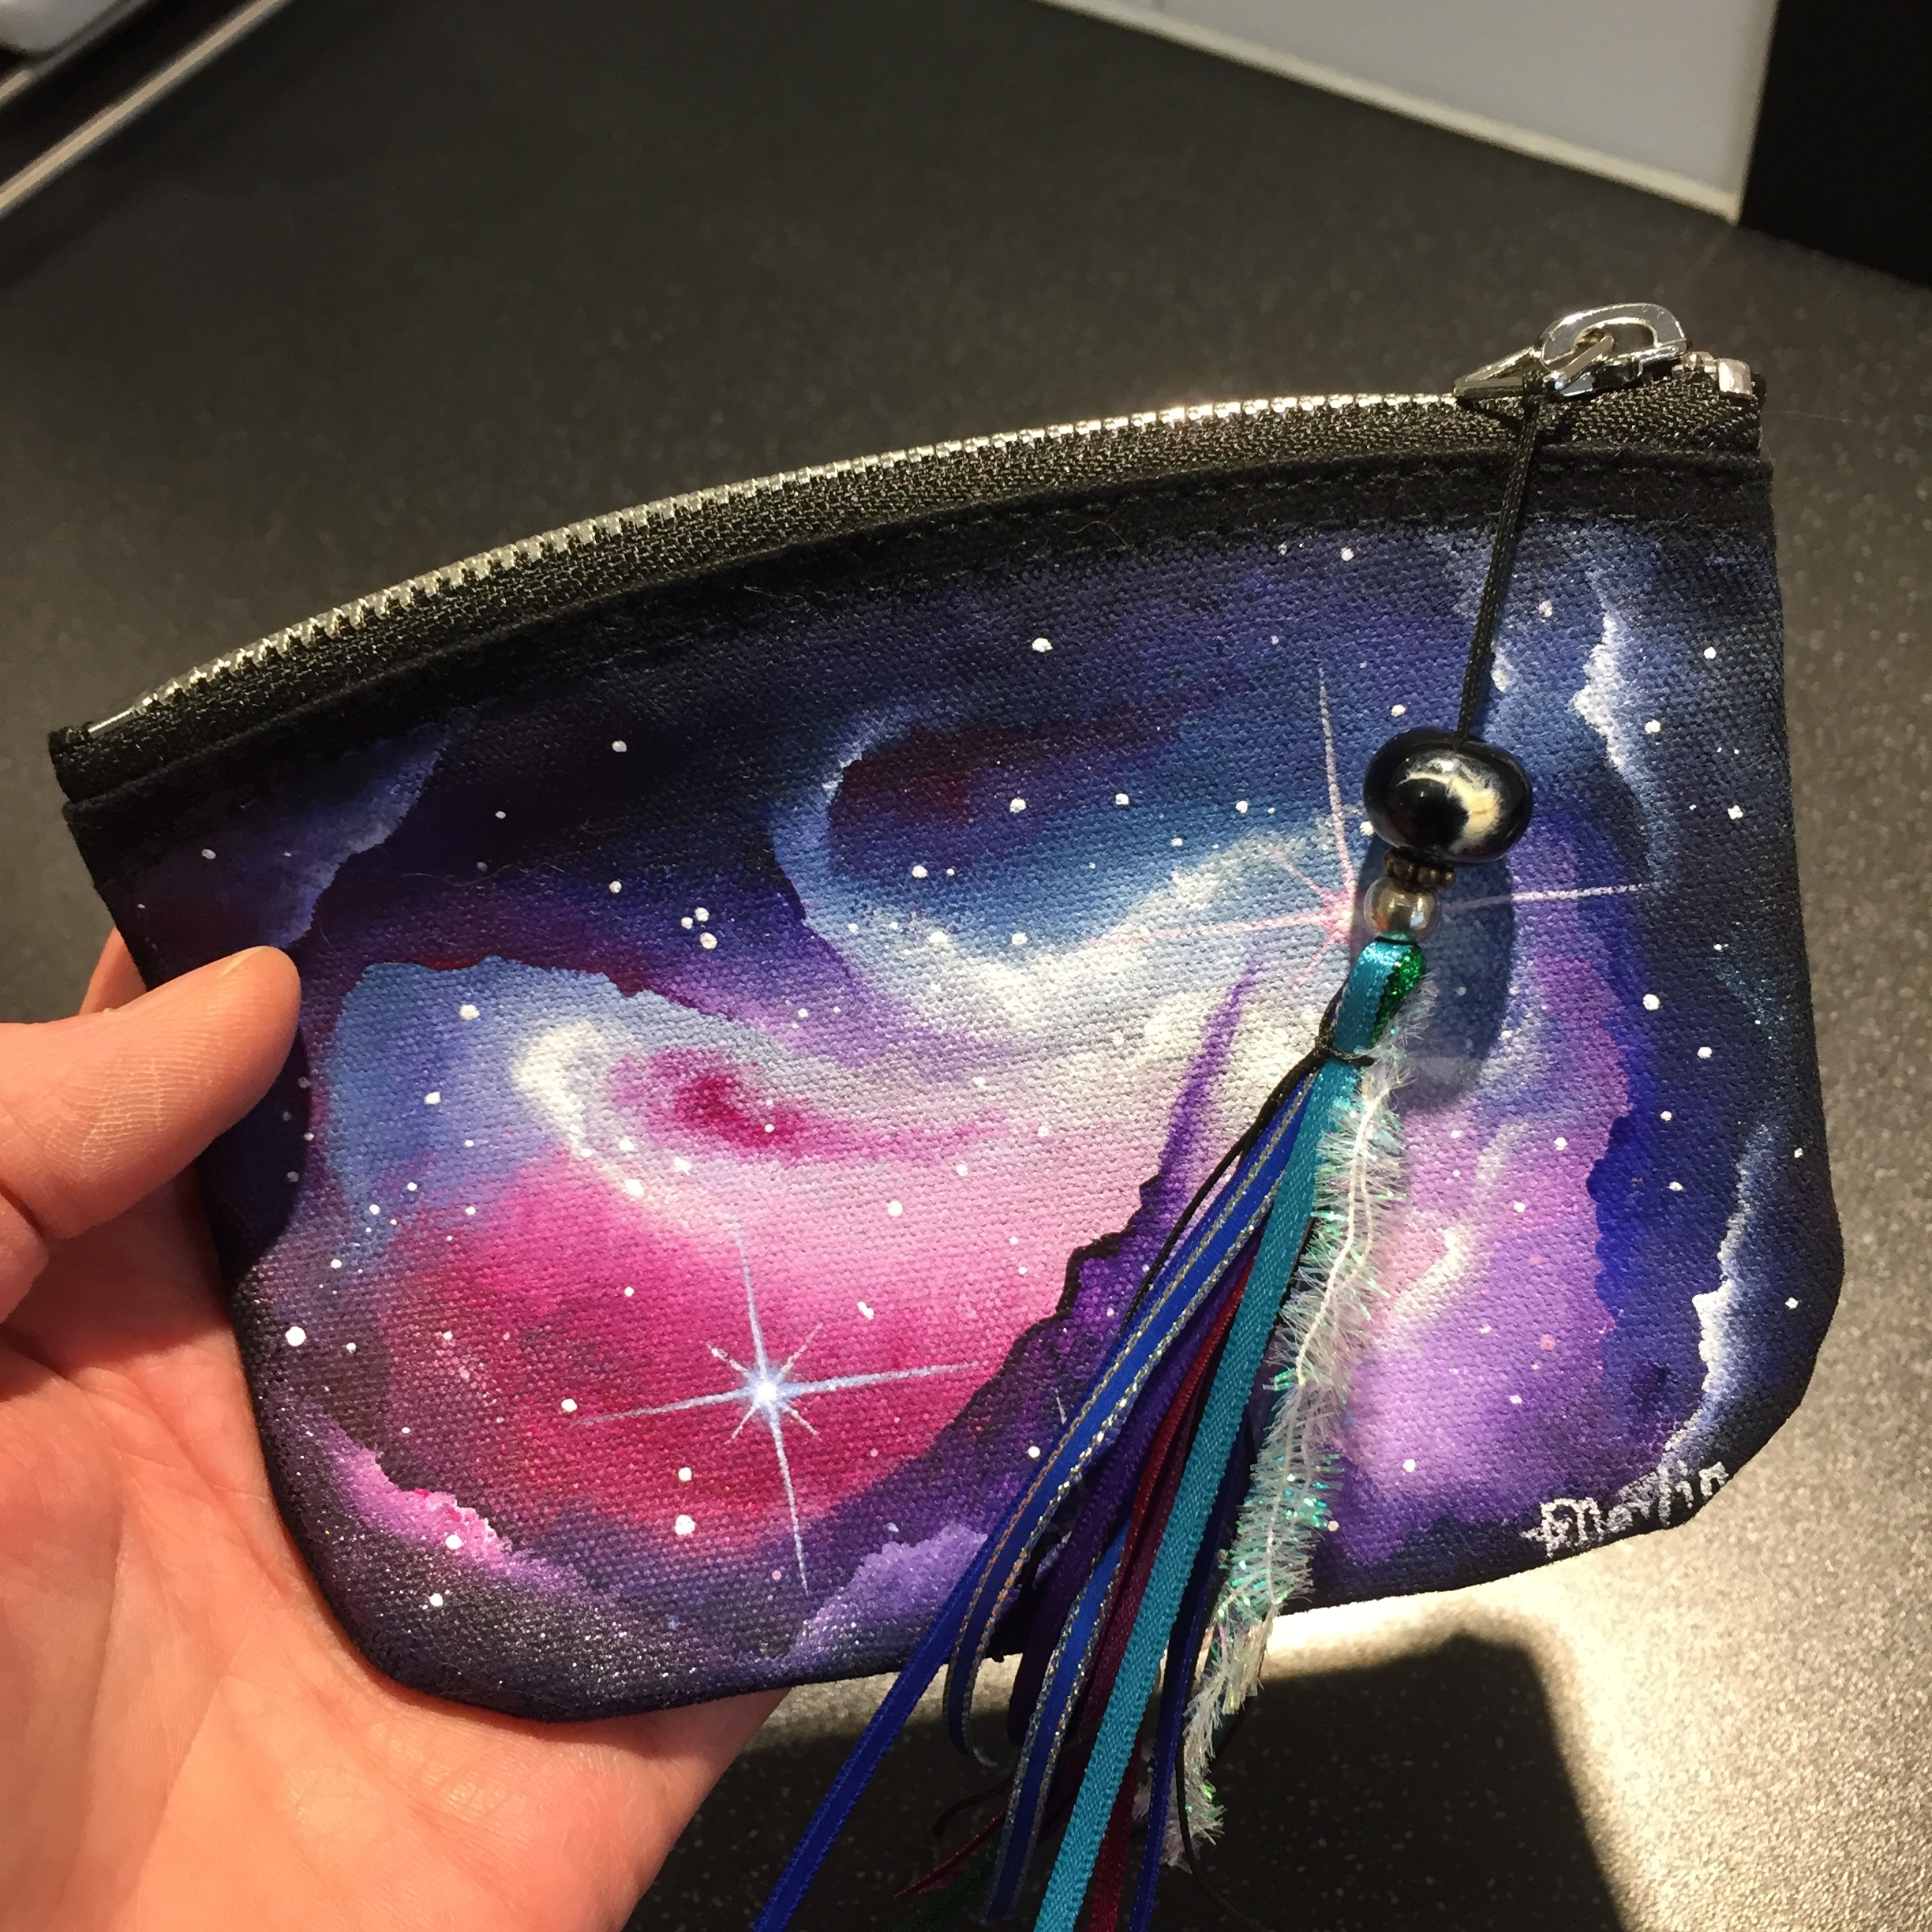 Here's the bag - I love the moon bead at the top of the tassel, which itself tones beautifully with the bag.